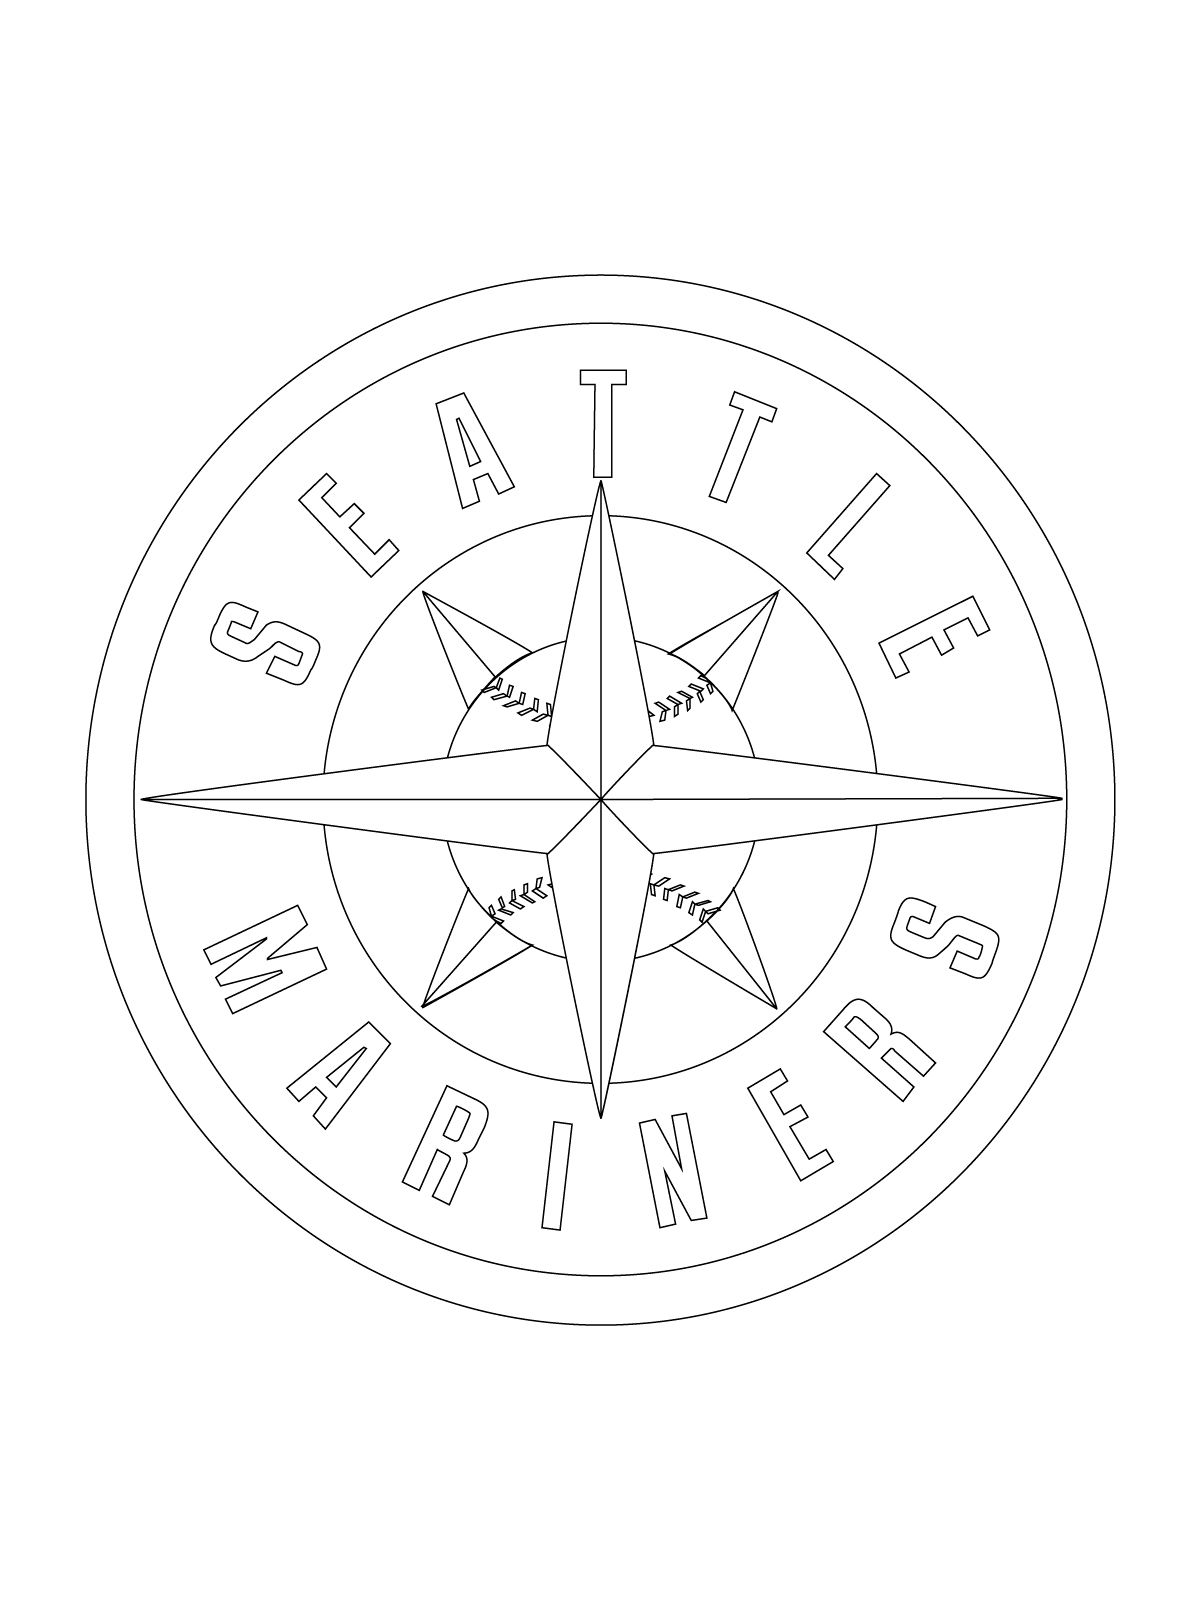 Seattle Mariners Logo Coloring Page Super Coloring Coloring